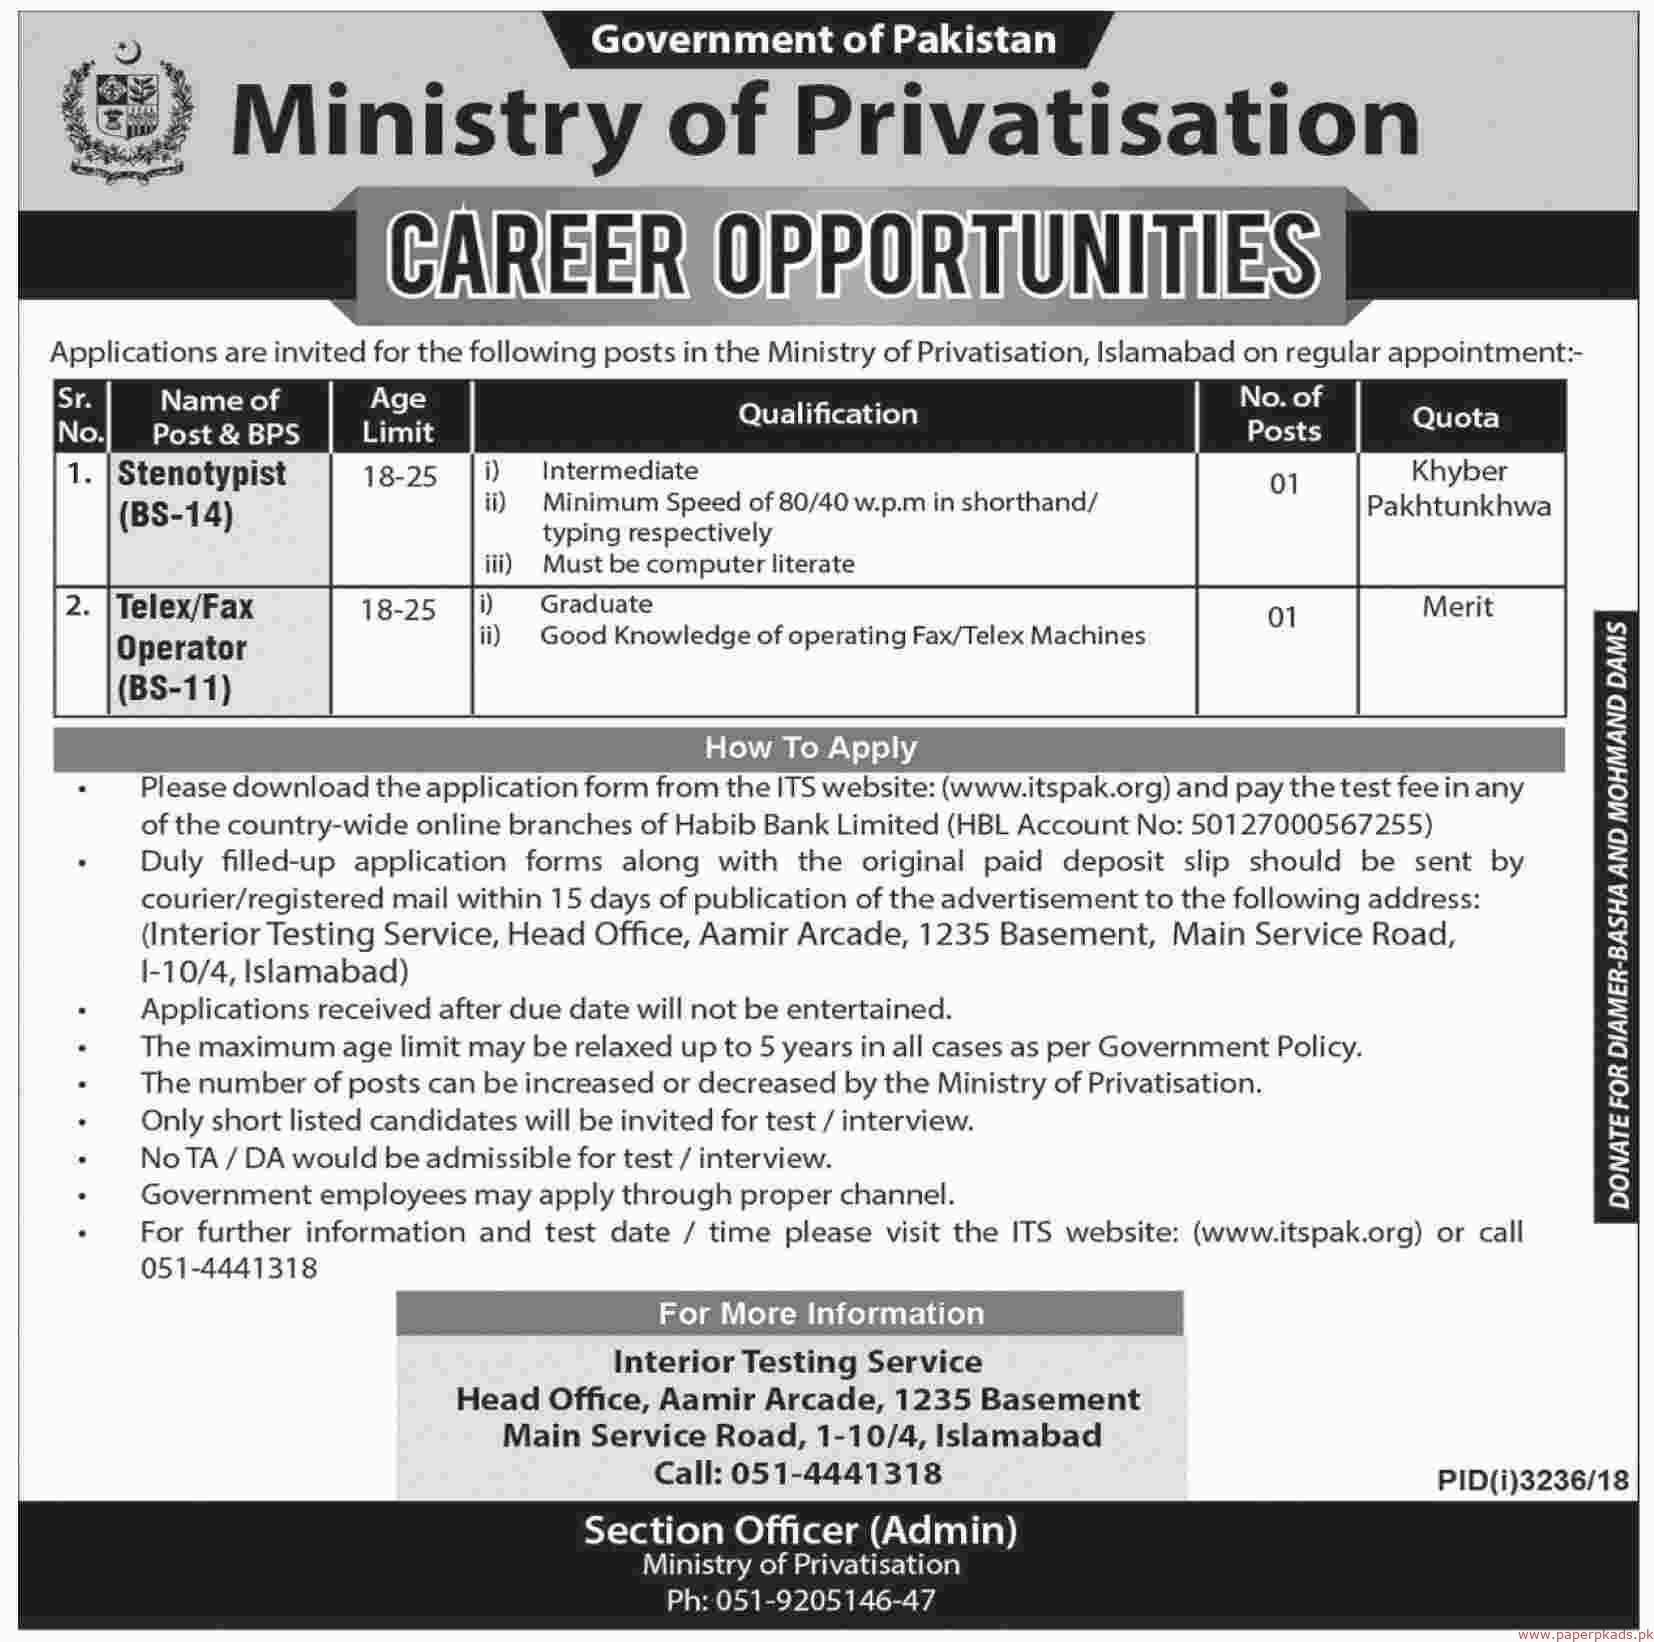 Government of Pakistan (Ministry of Privatisation) Jobs 2019 latest